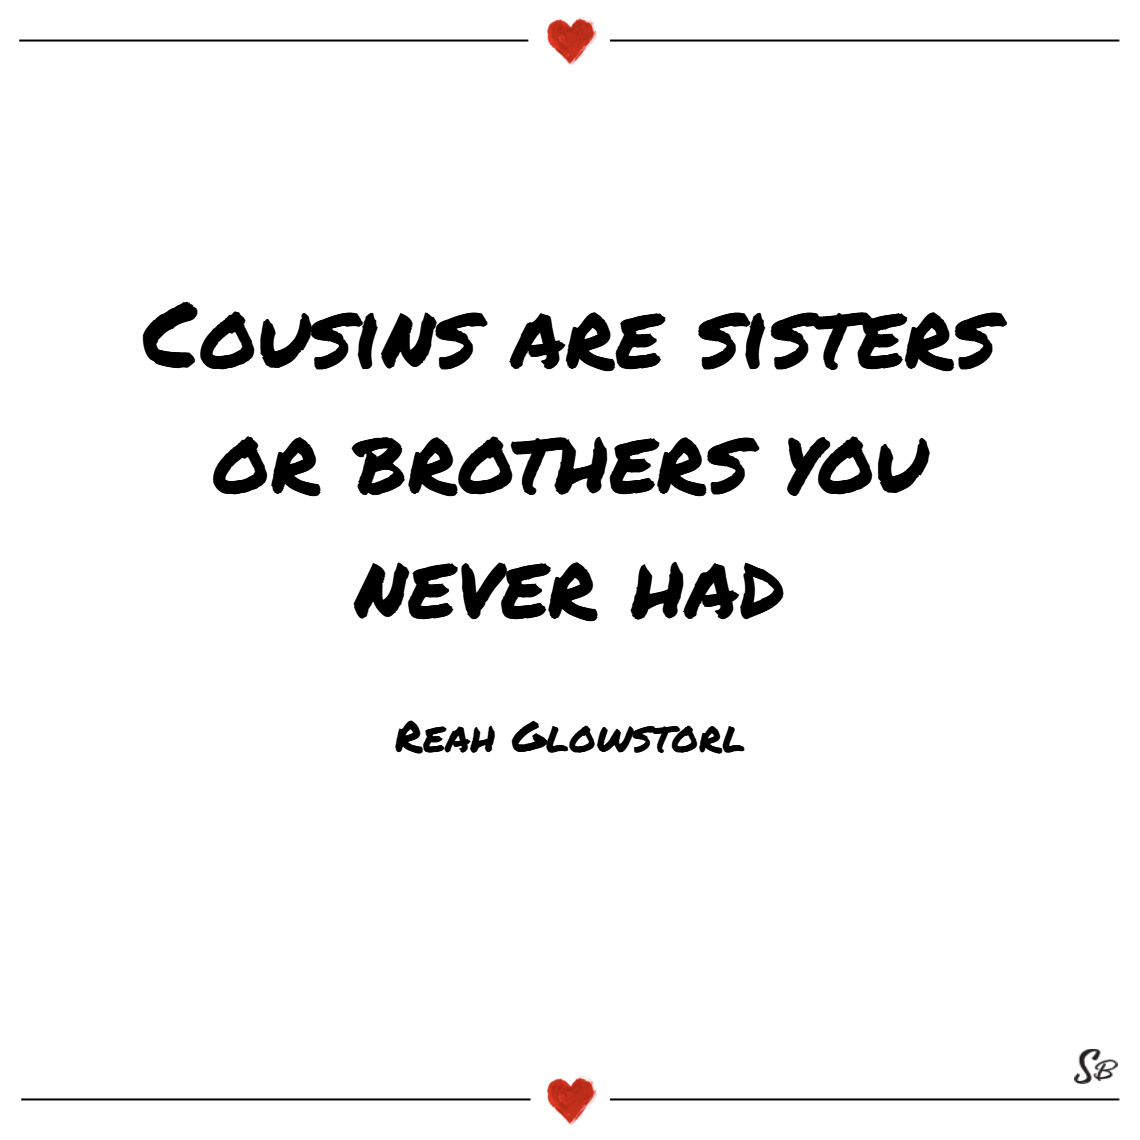 Cousins are sisters or brothers you never had. – reah glowstorl